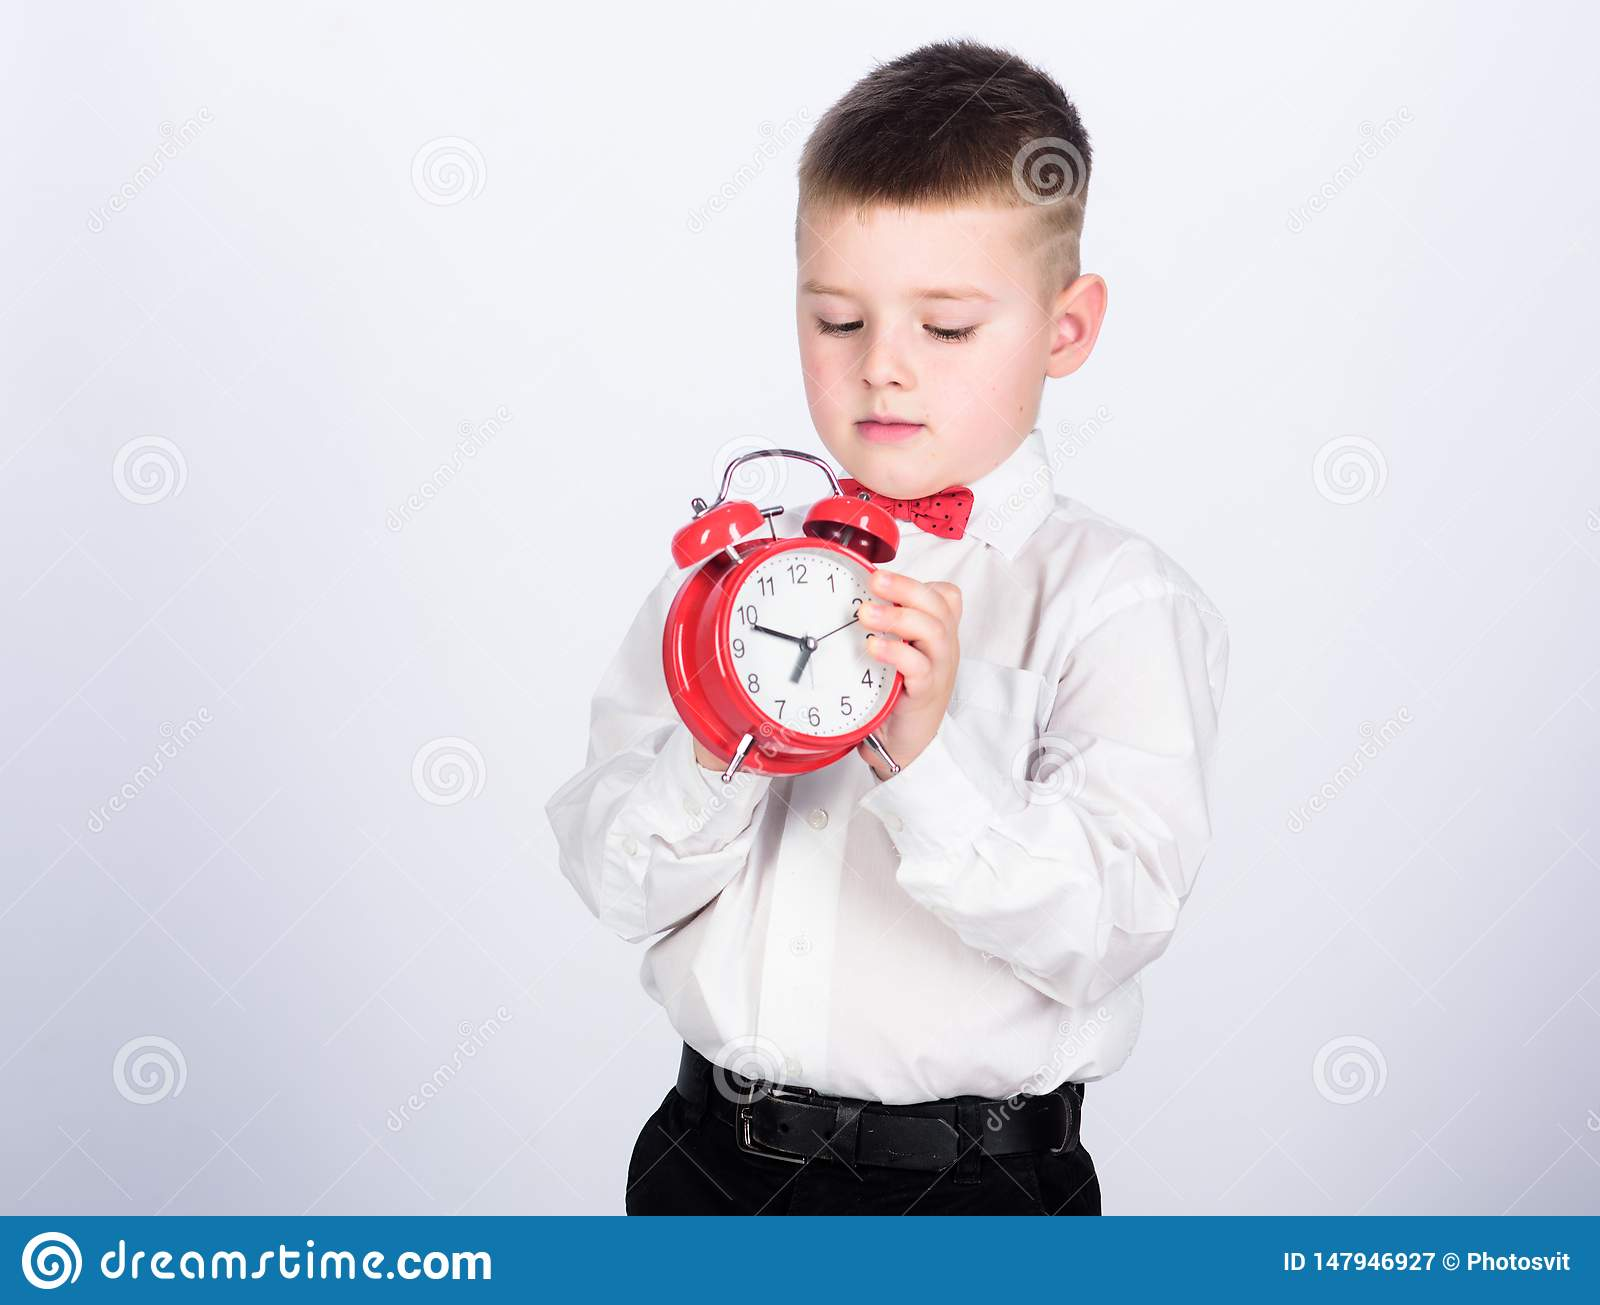 Set up alarm clock. Child little boy hold red clock. It is time. Schedule and timing. Morning routine. Schoolboy with